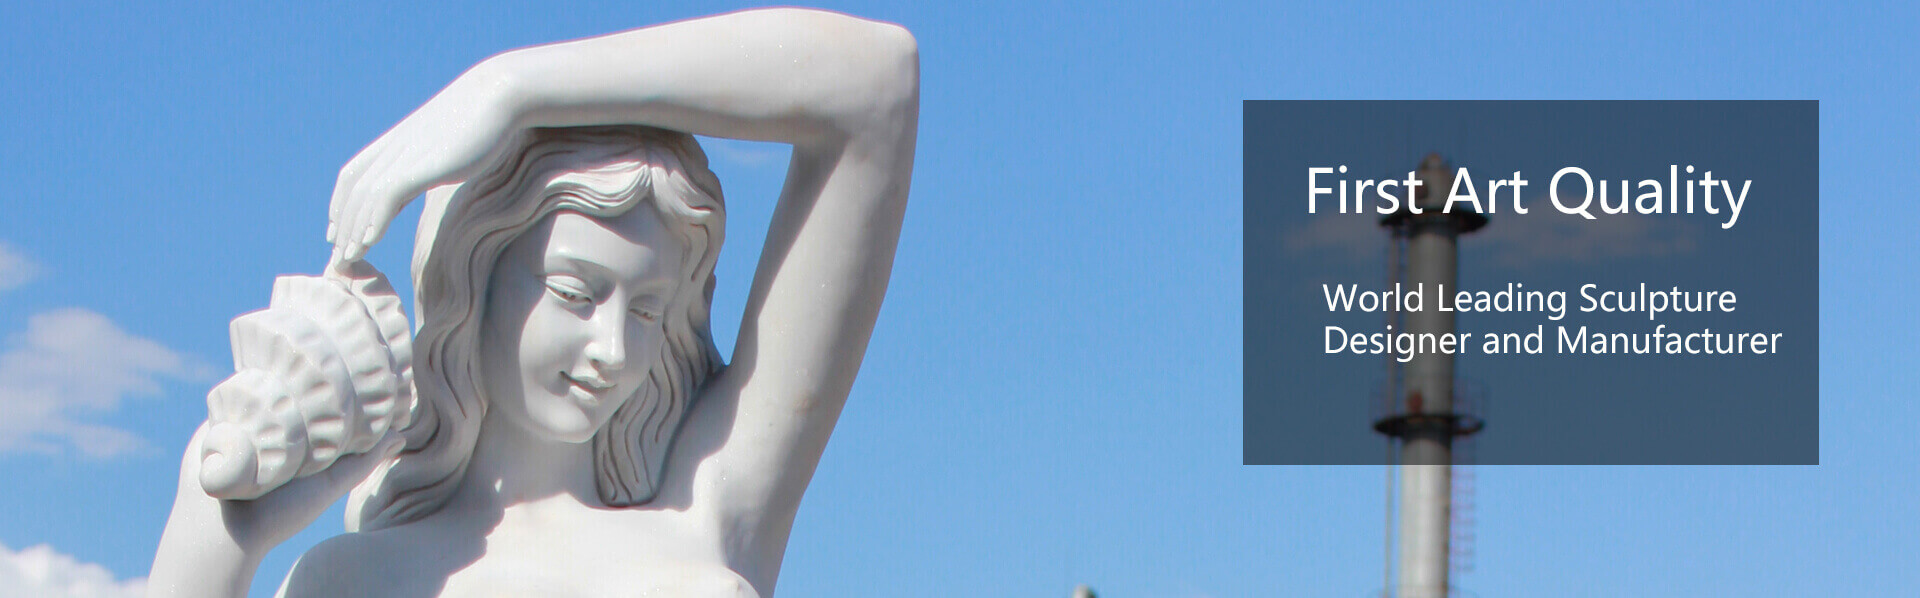 YouFine life size marble sculpture banner01